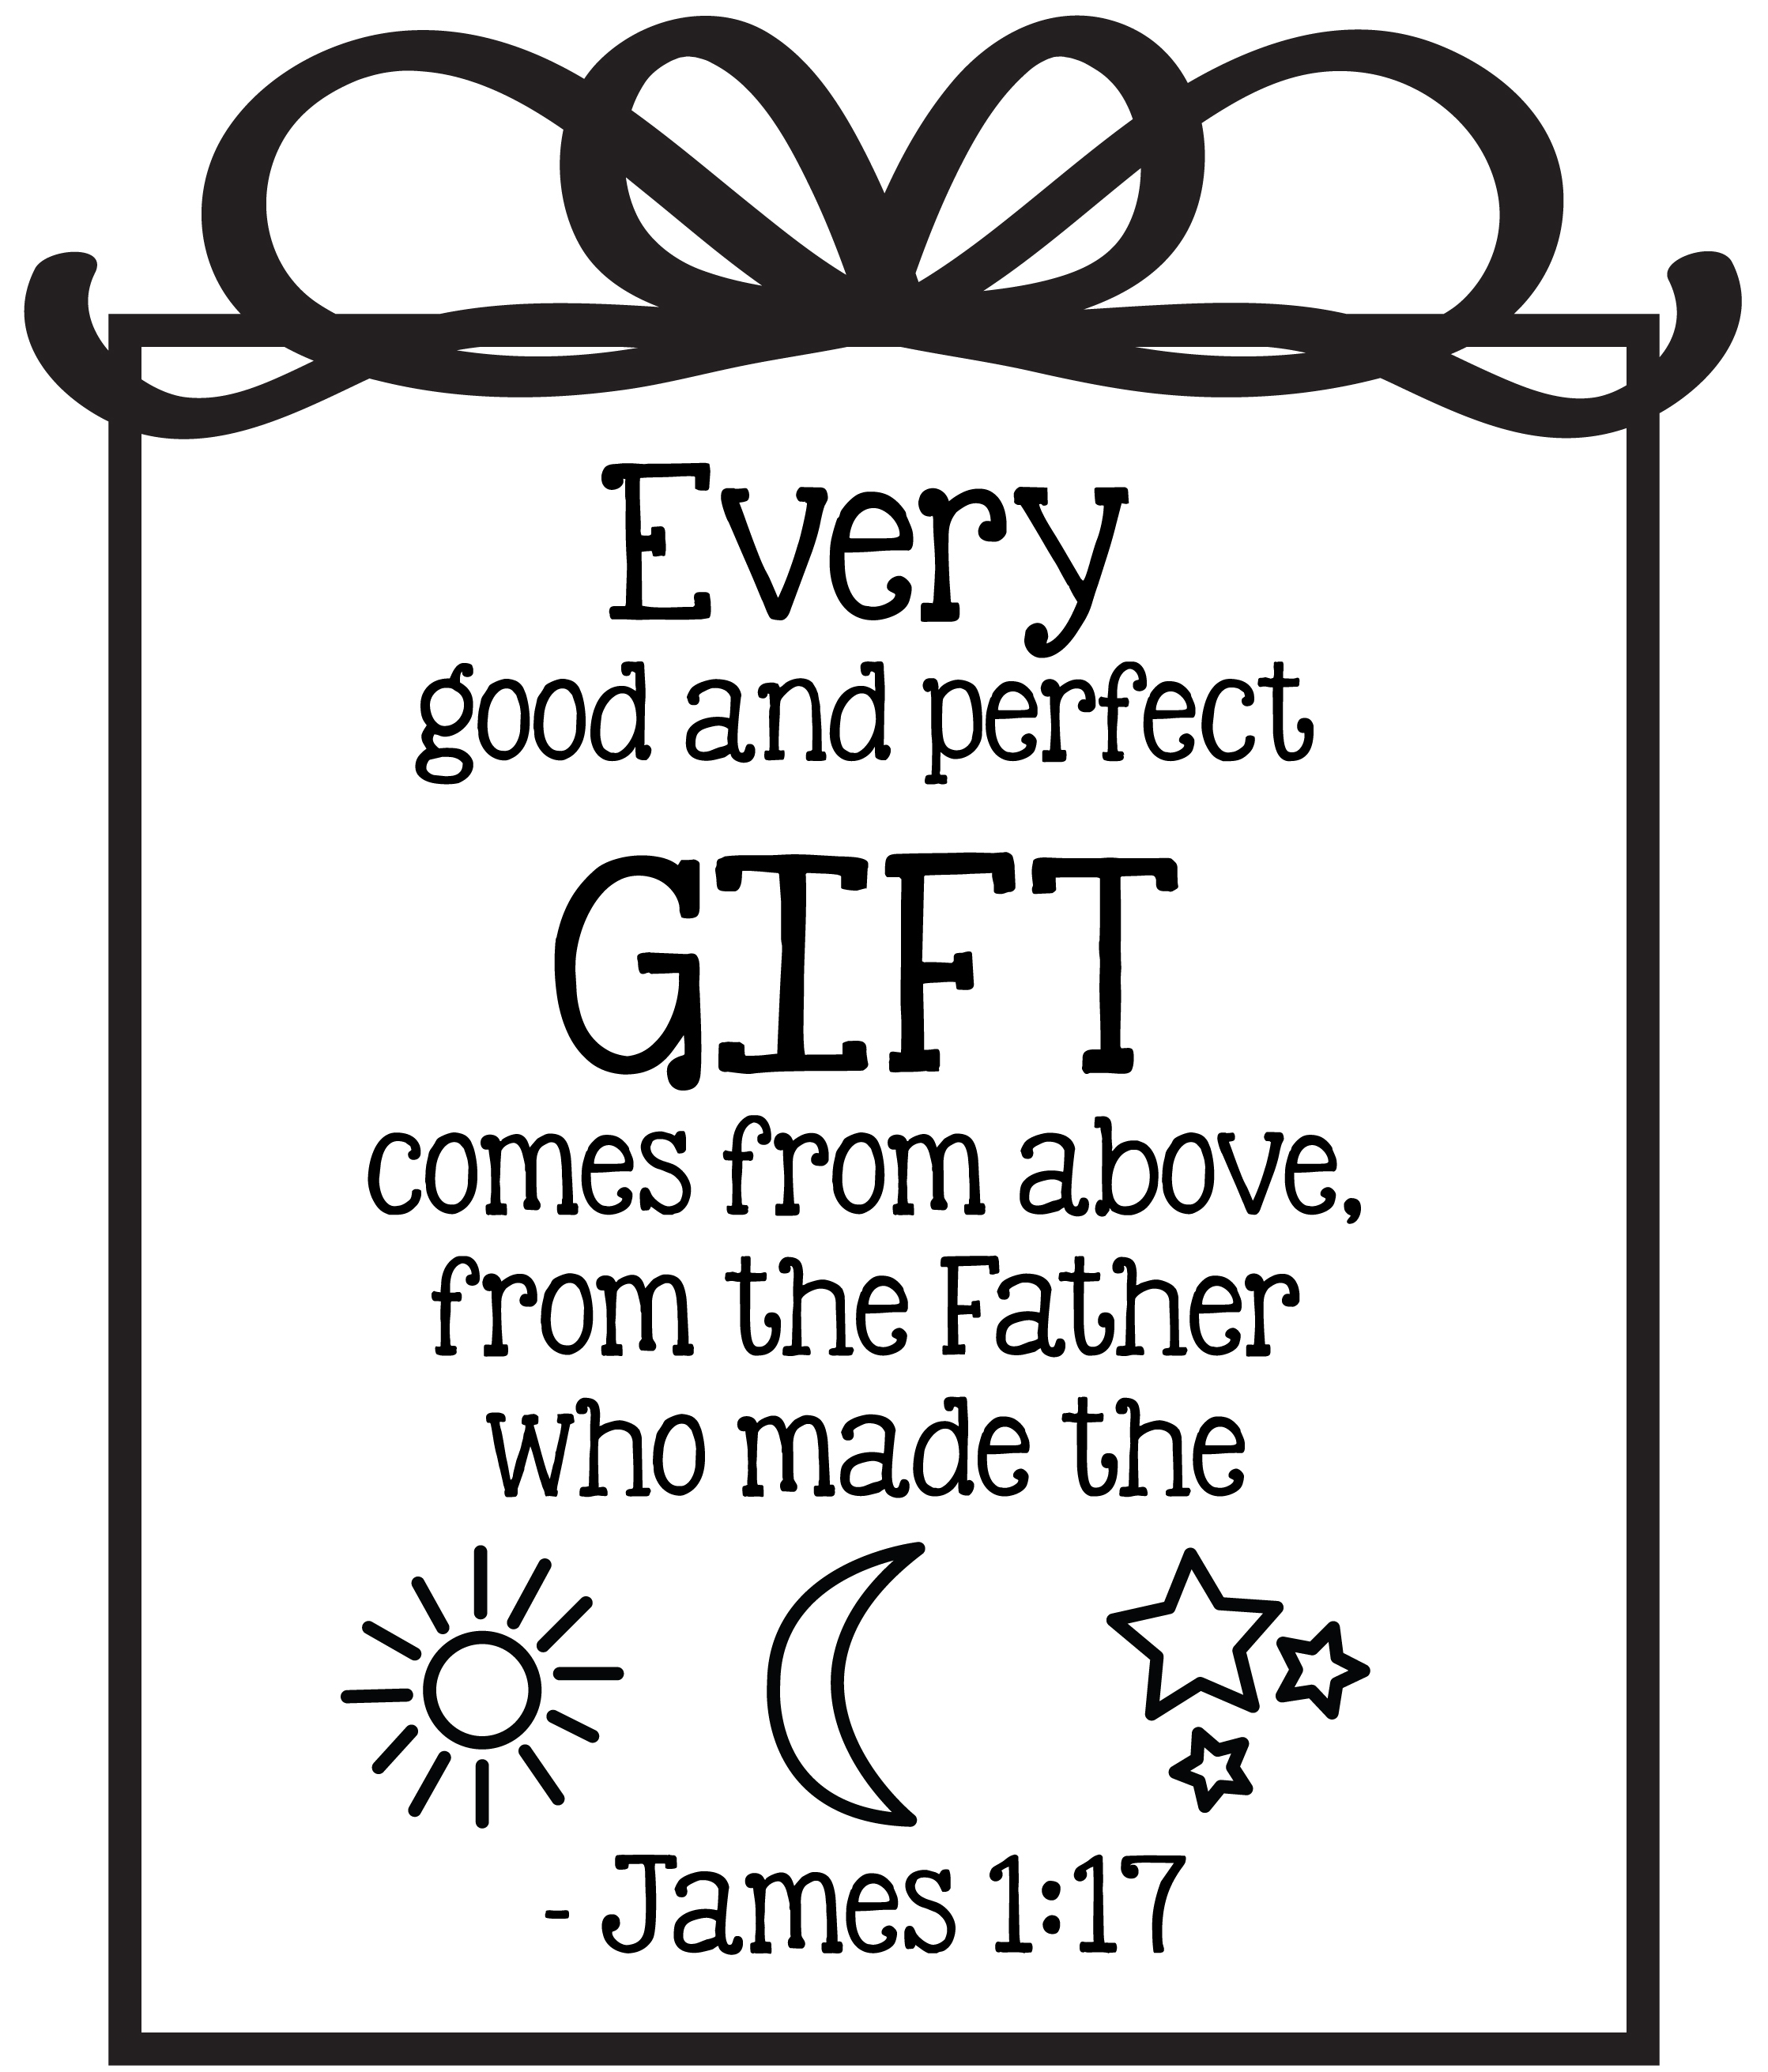 E Every good and perfect gift comes from above. From the